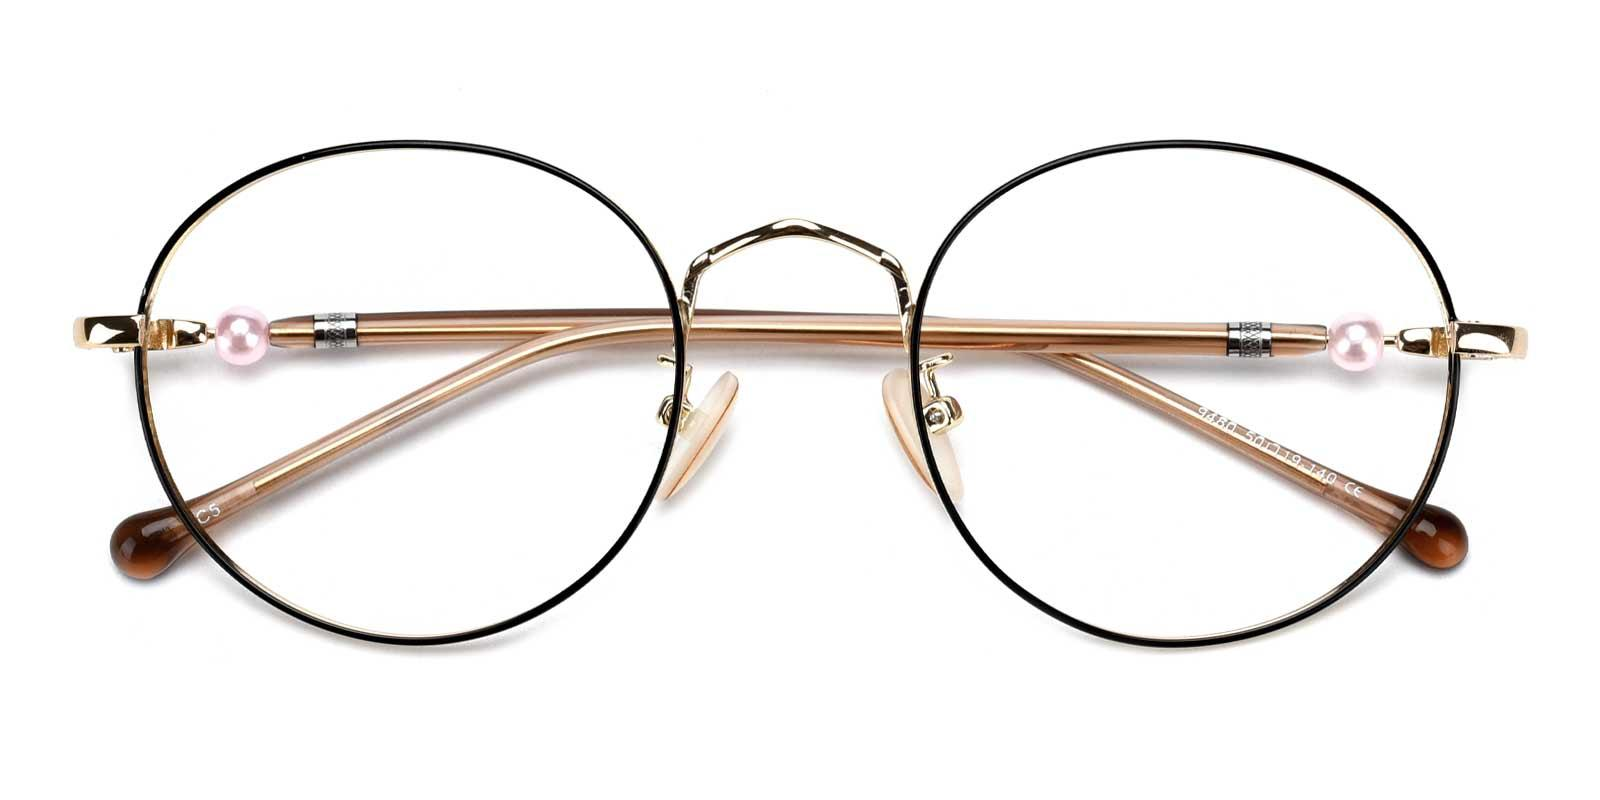 Oswego-Gold-Round-Metal-Eyeglasses-detail